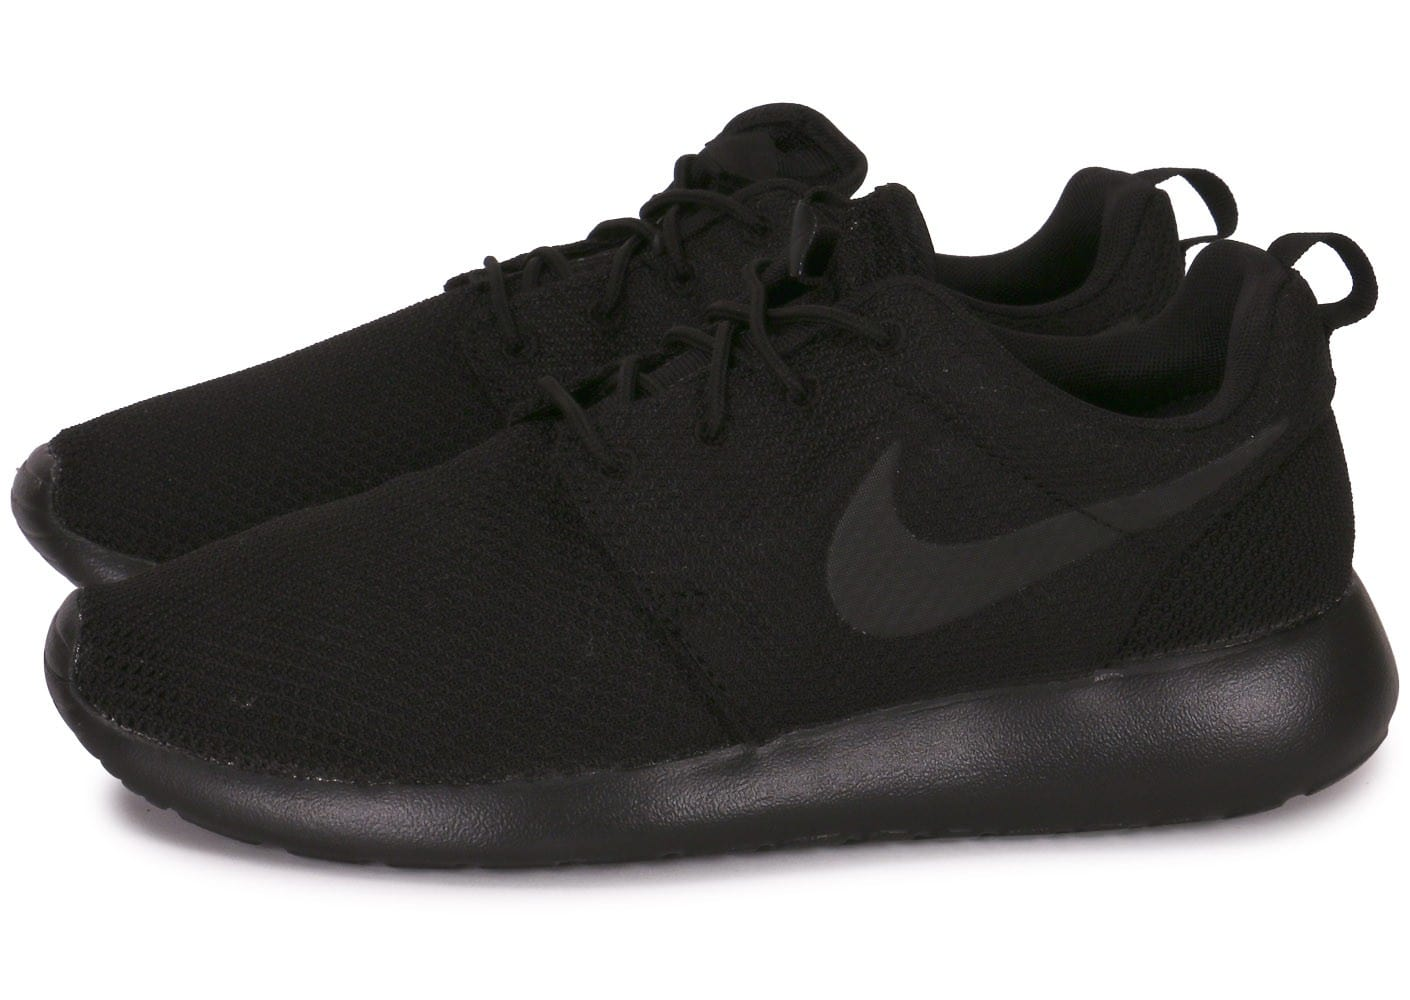 nike roshe one triple black chaussures homme chausport. Black Bedroom Furniture Sets. Home Design Ideas